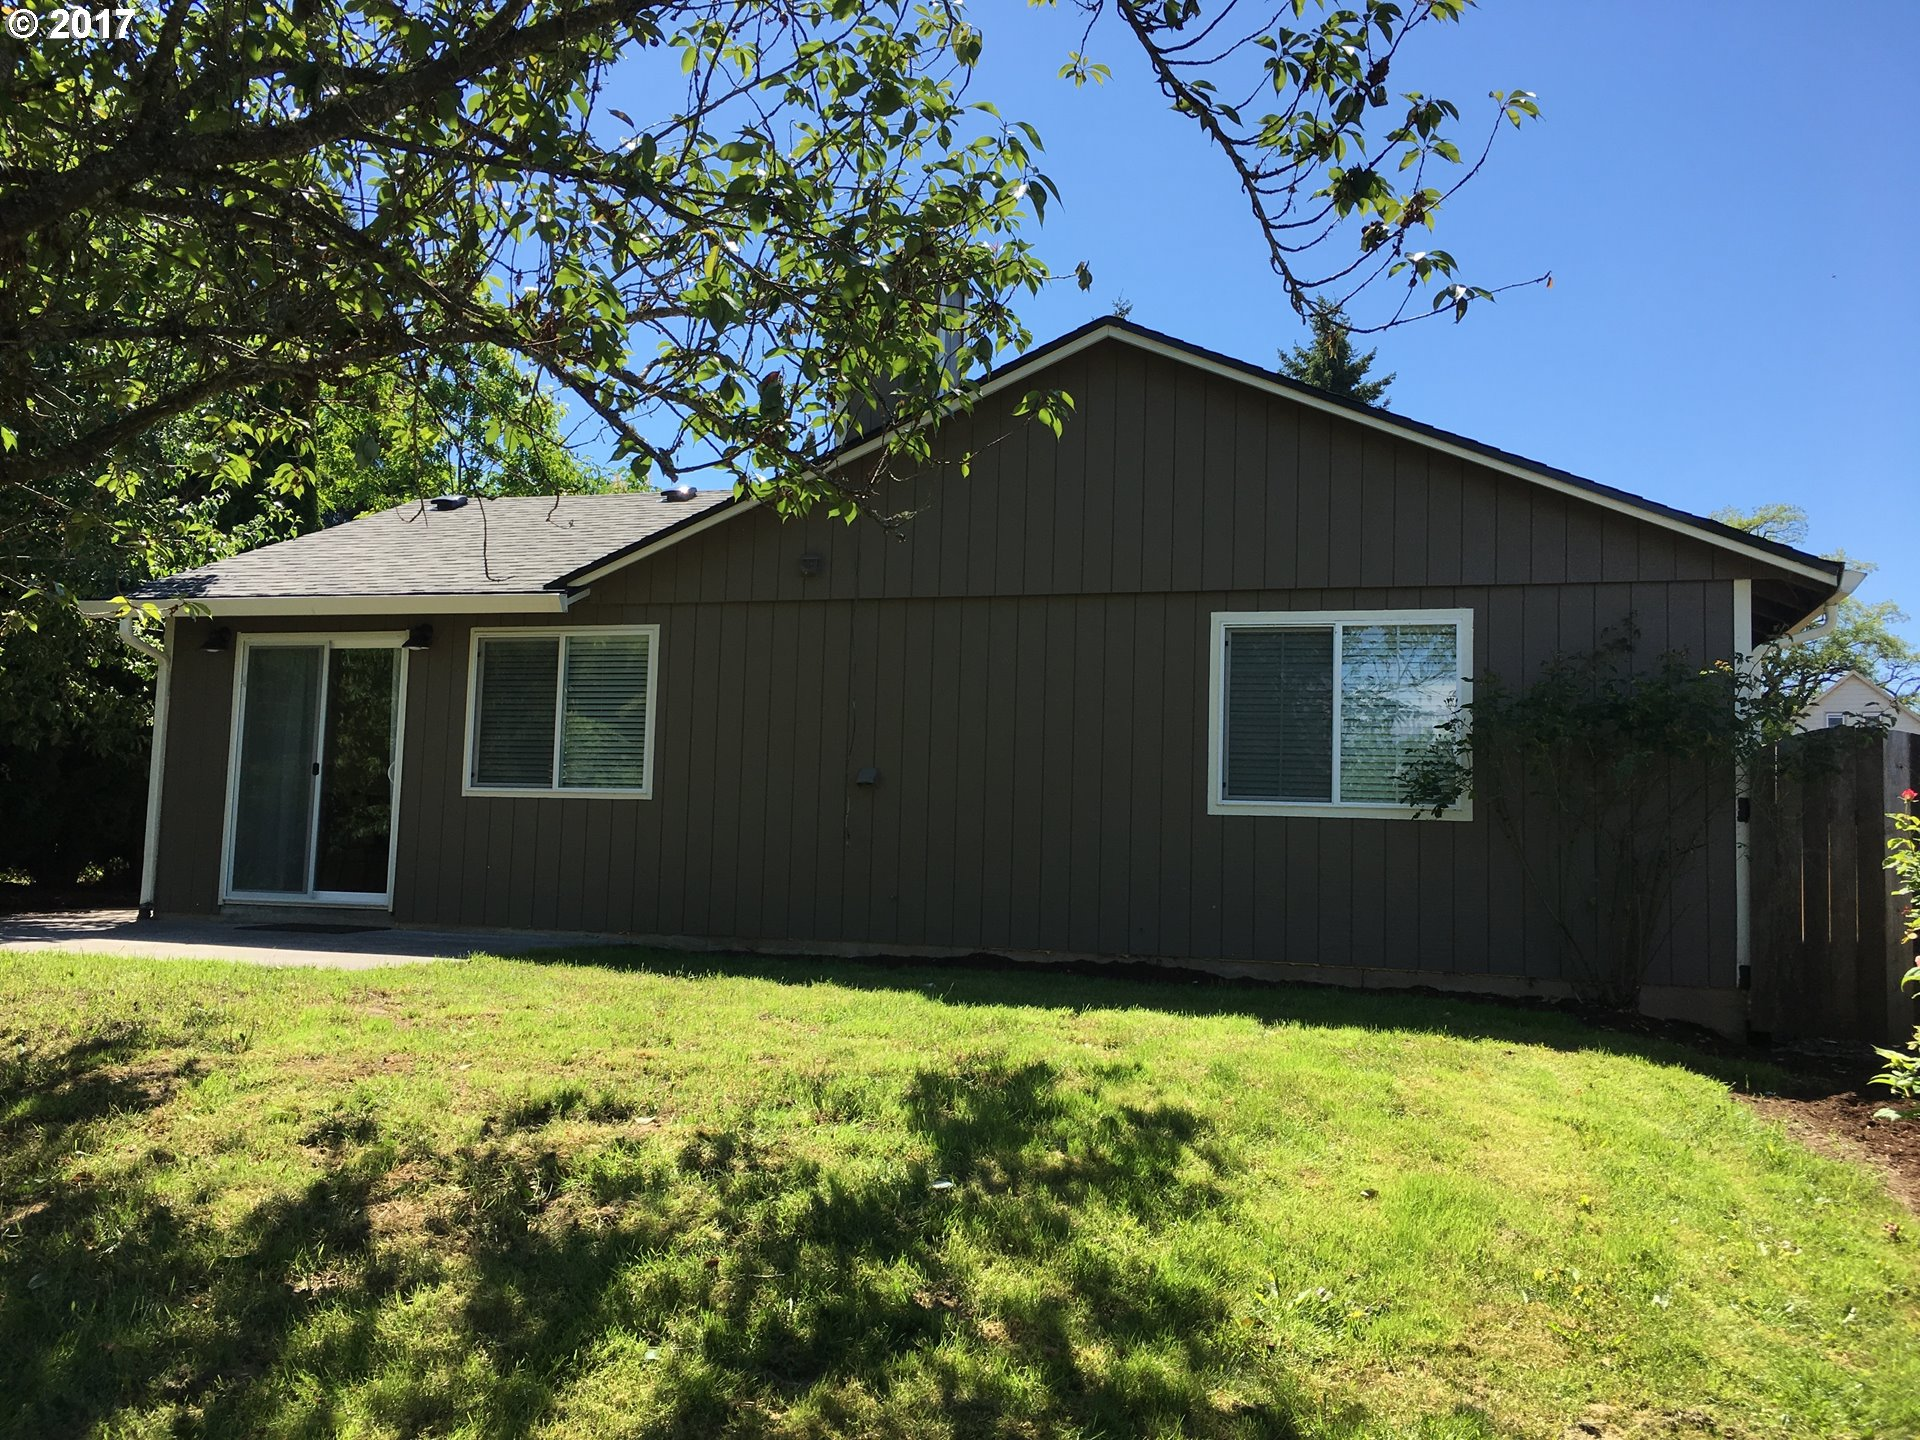 408 NE 112TH CIR Vancouver, WA 98685 - MLS #: 17523233